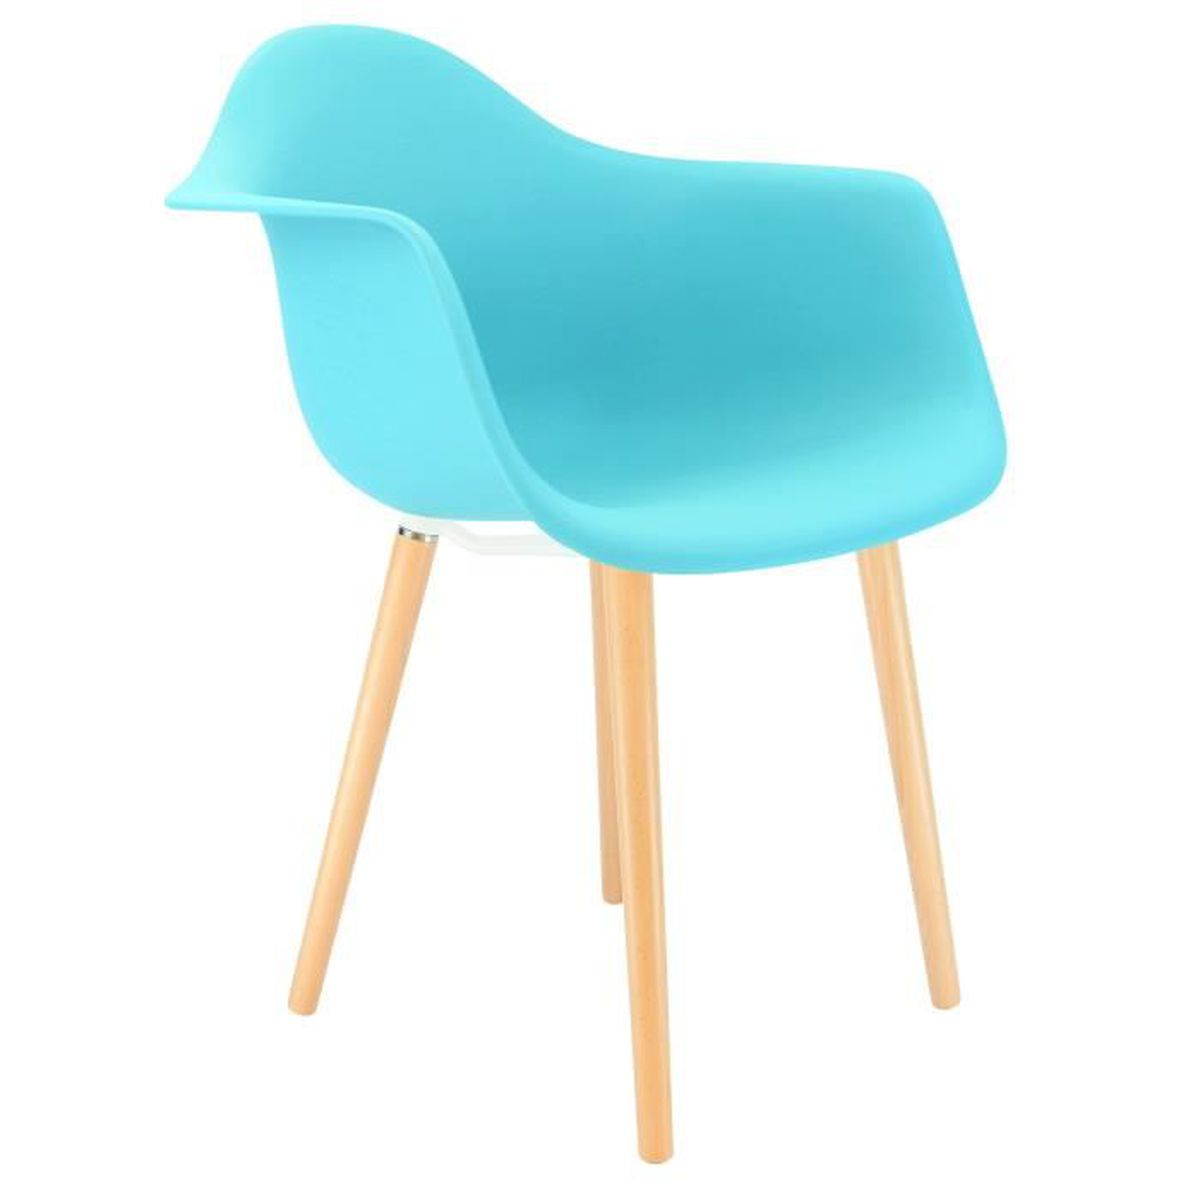 Chaise privee chaise atw baby blue naturel achat vente chaise - Cdiscount vente privee ...